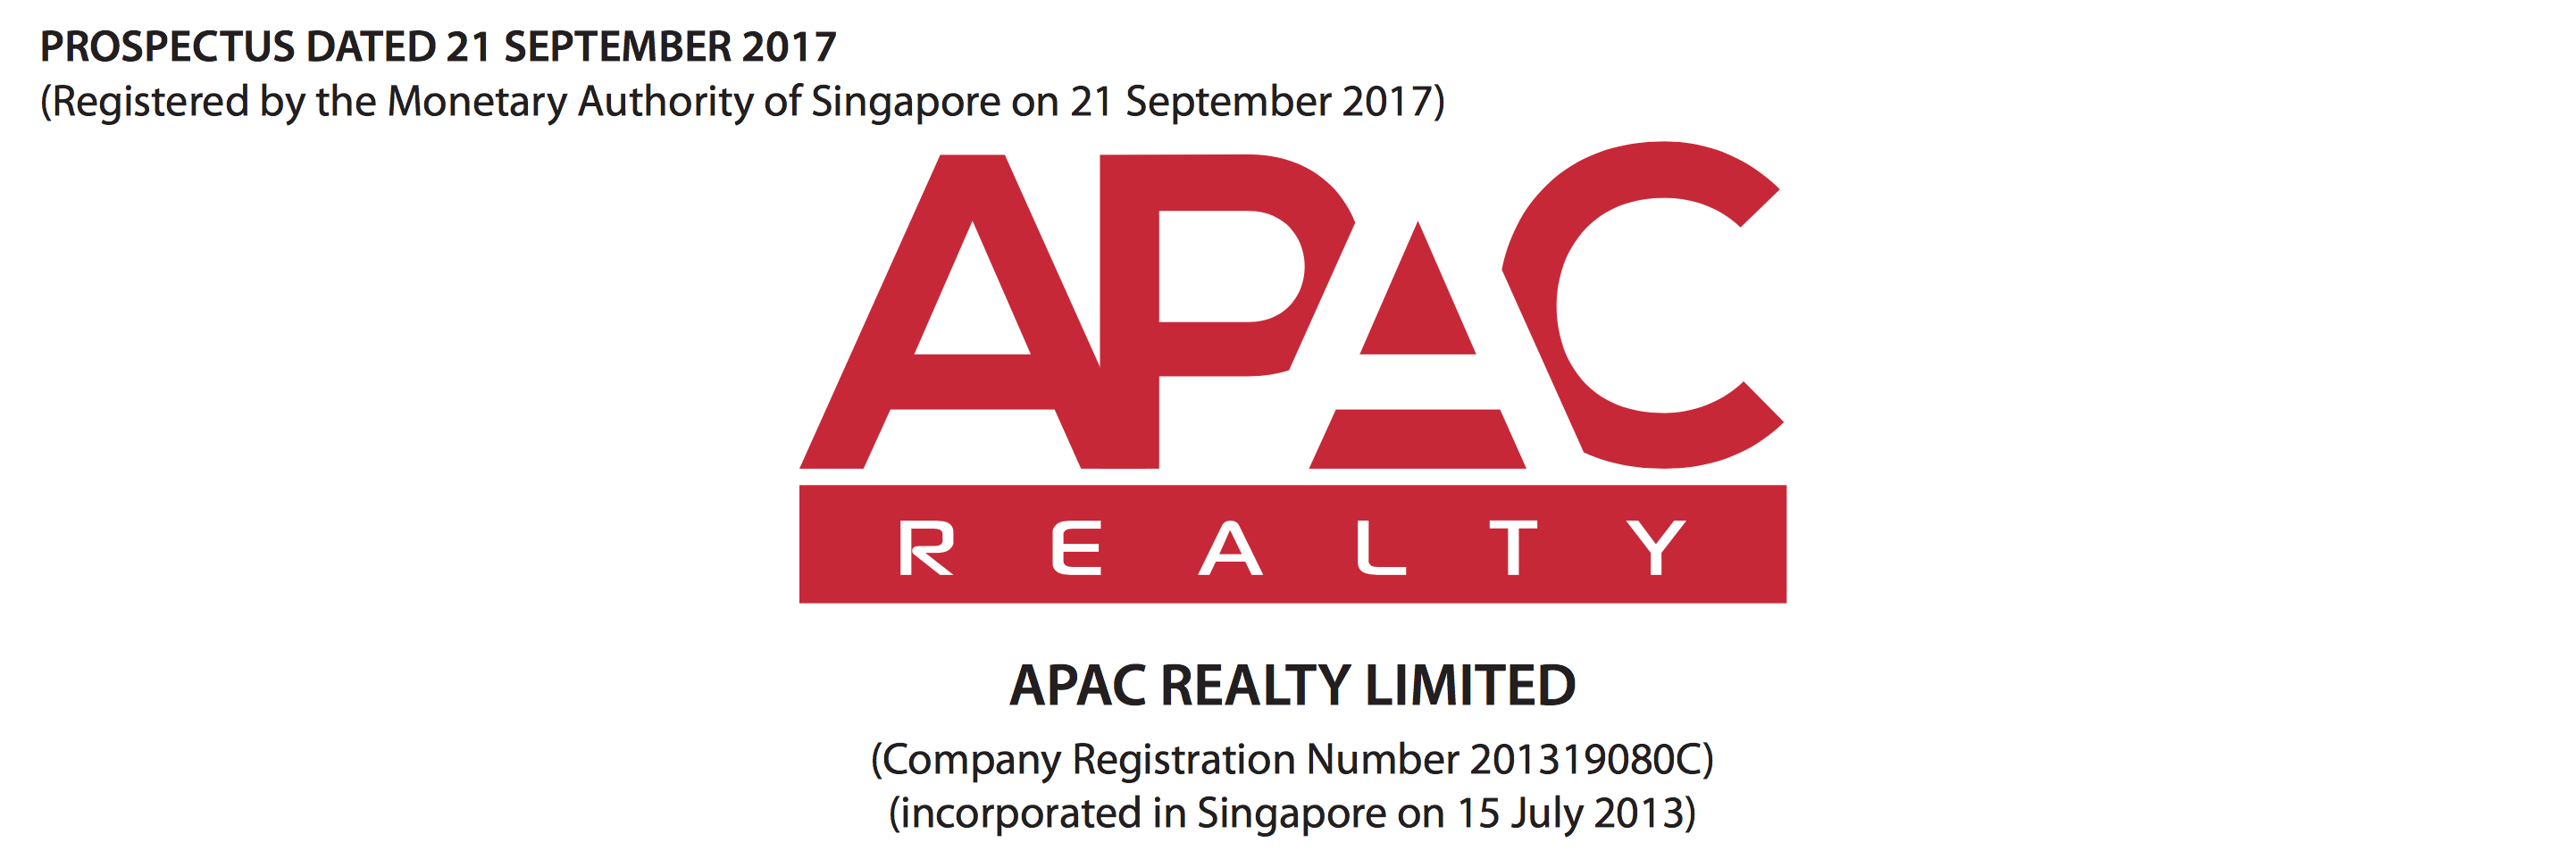 Apac realty share price ipo